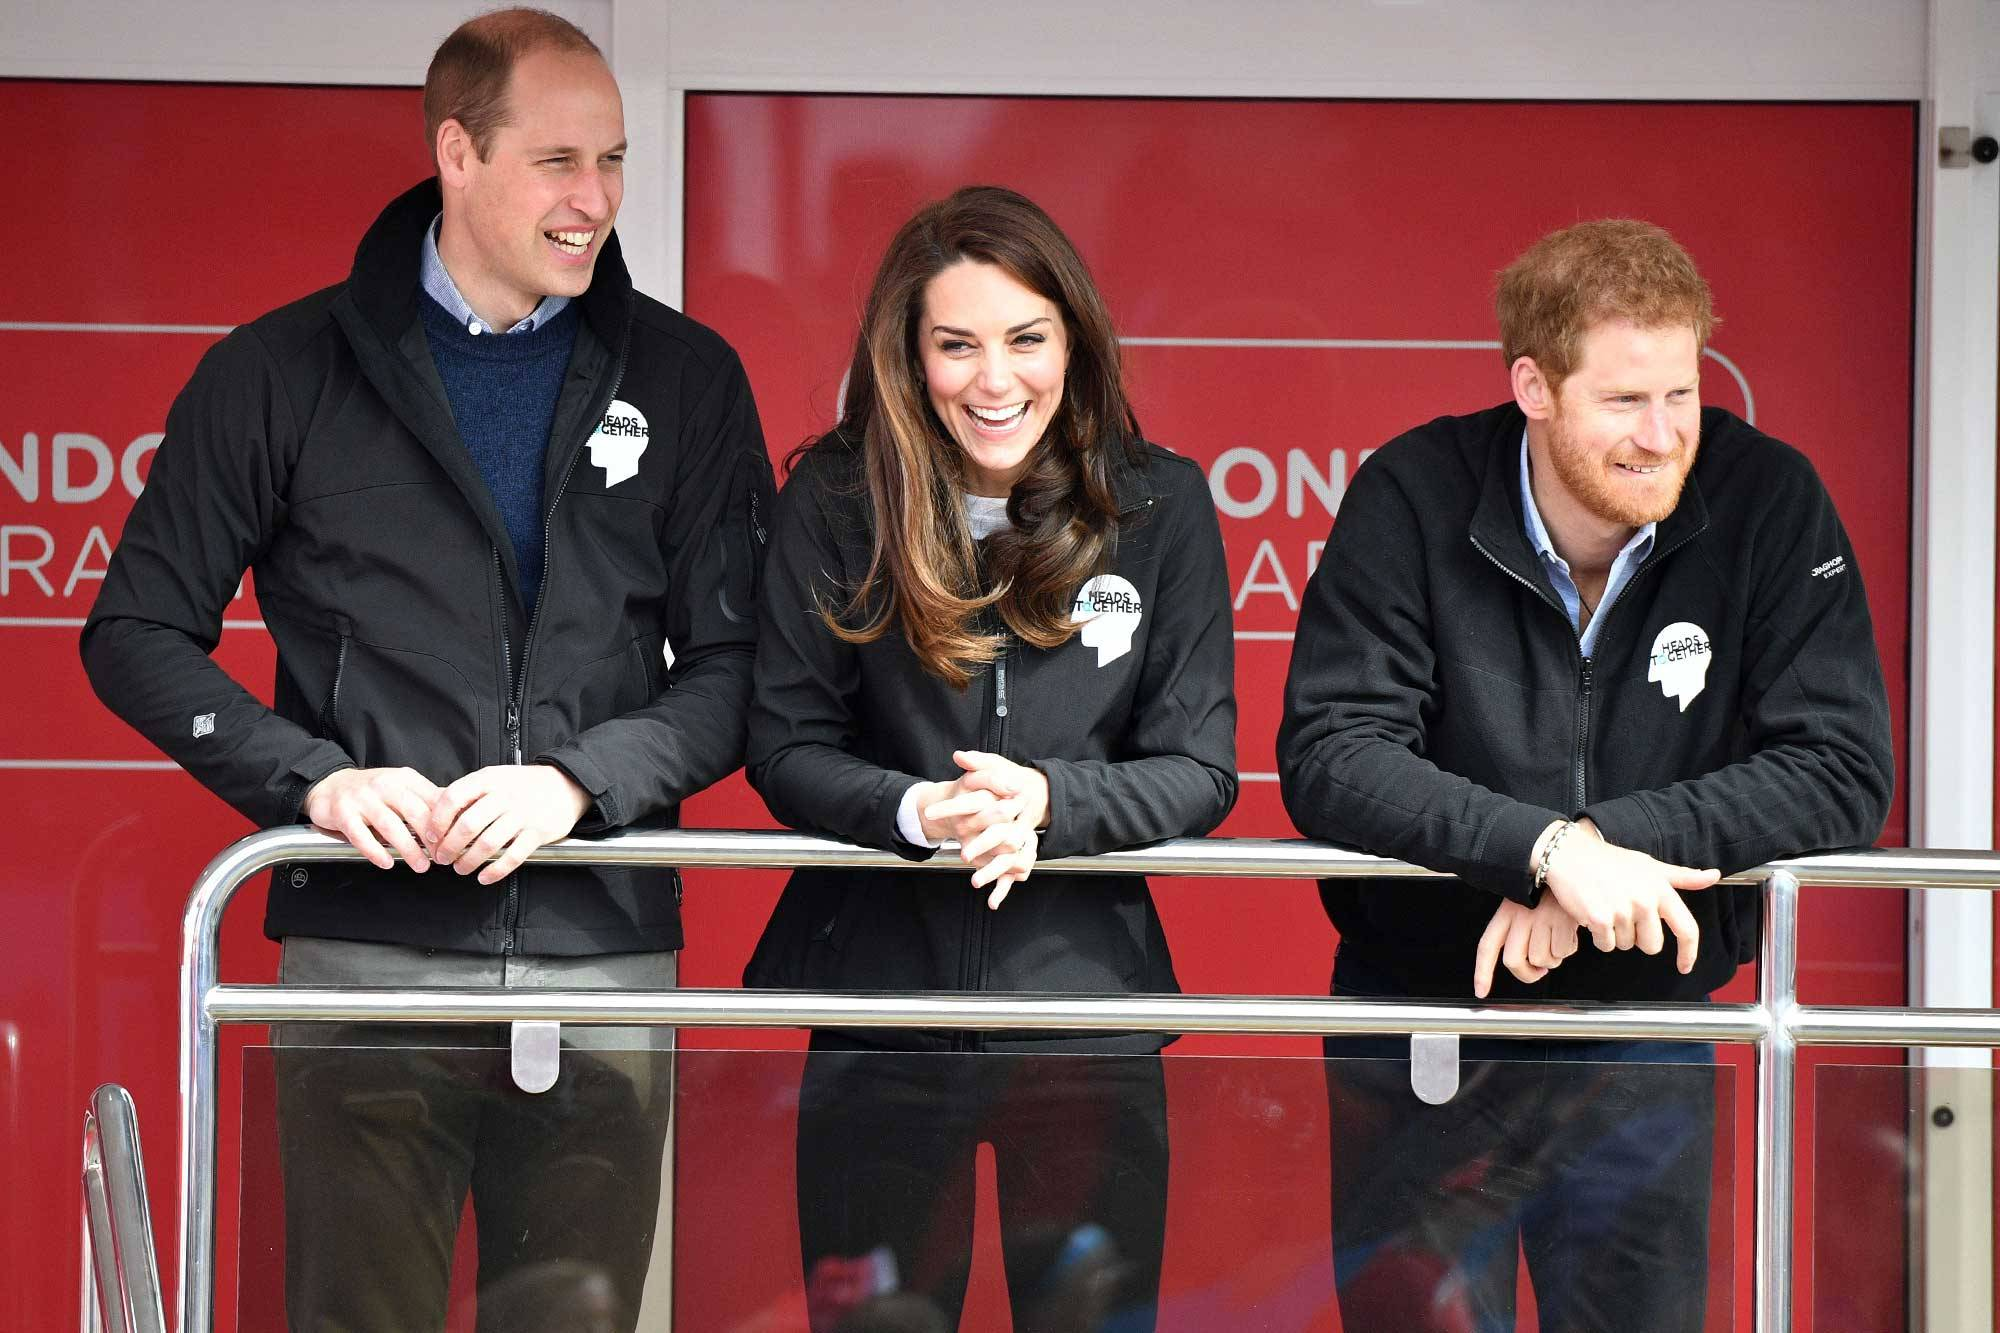 Prince Harry Even friends of mine who never text me have messaged me to say what a fantastic week we've had Photo (C) GETTY IMAGES